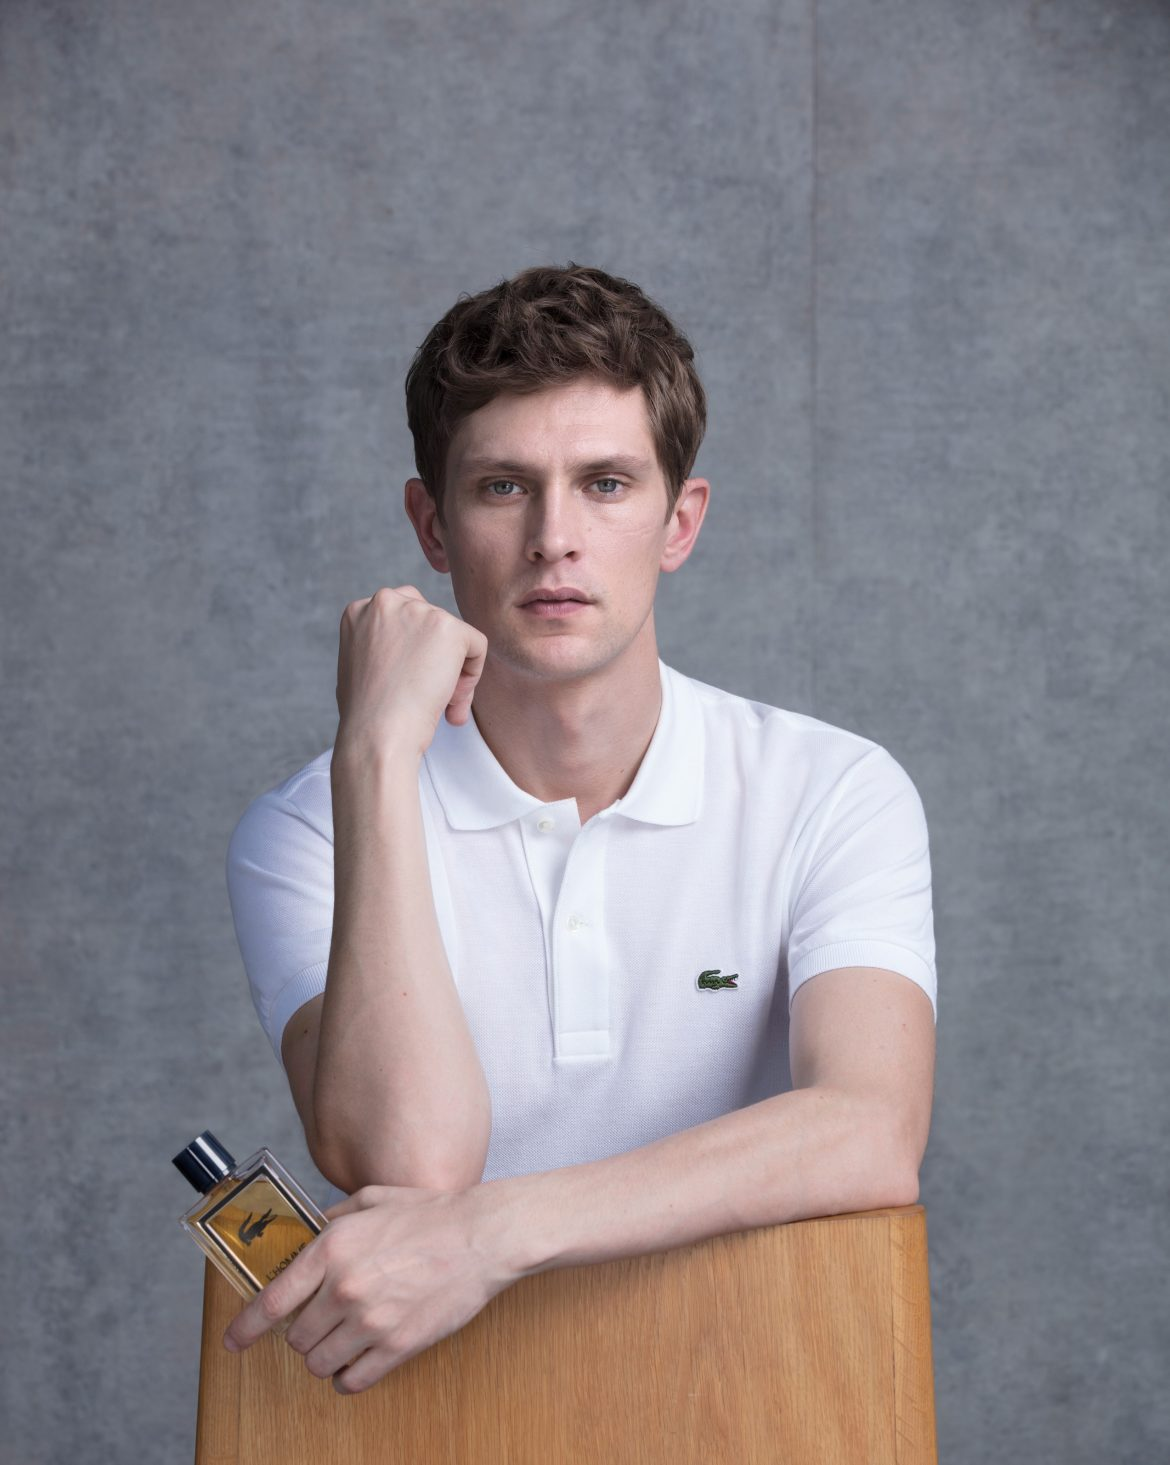 005-l-homme-lacoste-%e2%88%8f-all-rights-reserved